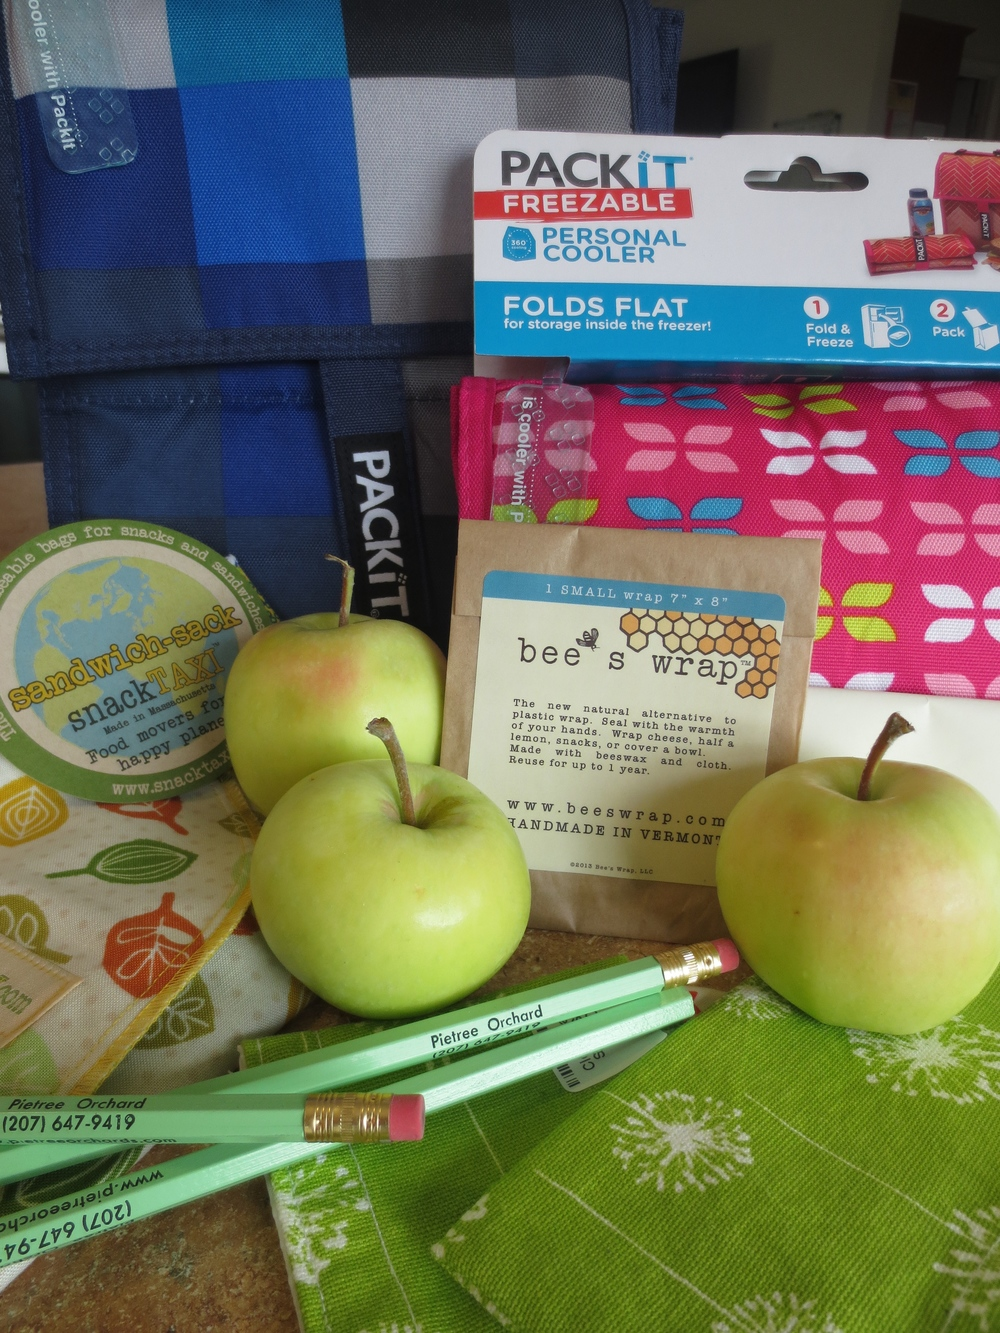 Back to School with Pietree Orchard! Here are Some of the Items to be Raffled Off August 16th and 17th: Bee's Wrap, Snack Taxis, Pencils, LunchBoxes, Freeze Packs and More!